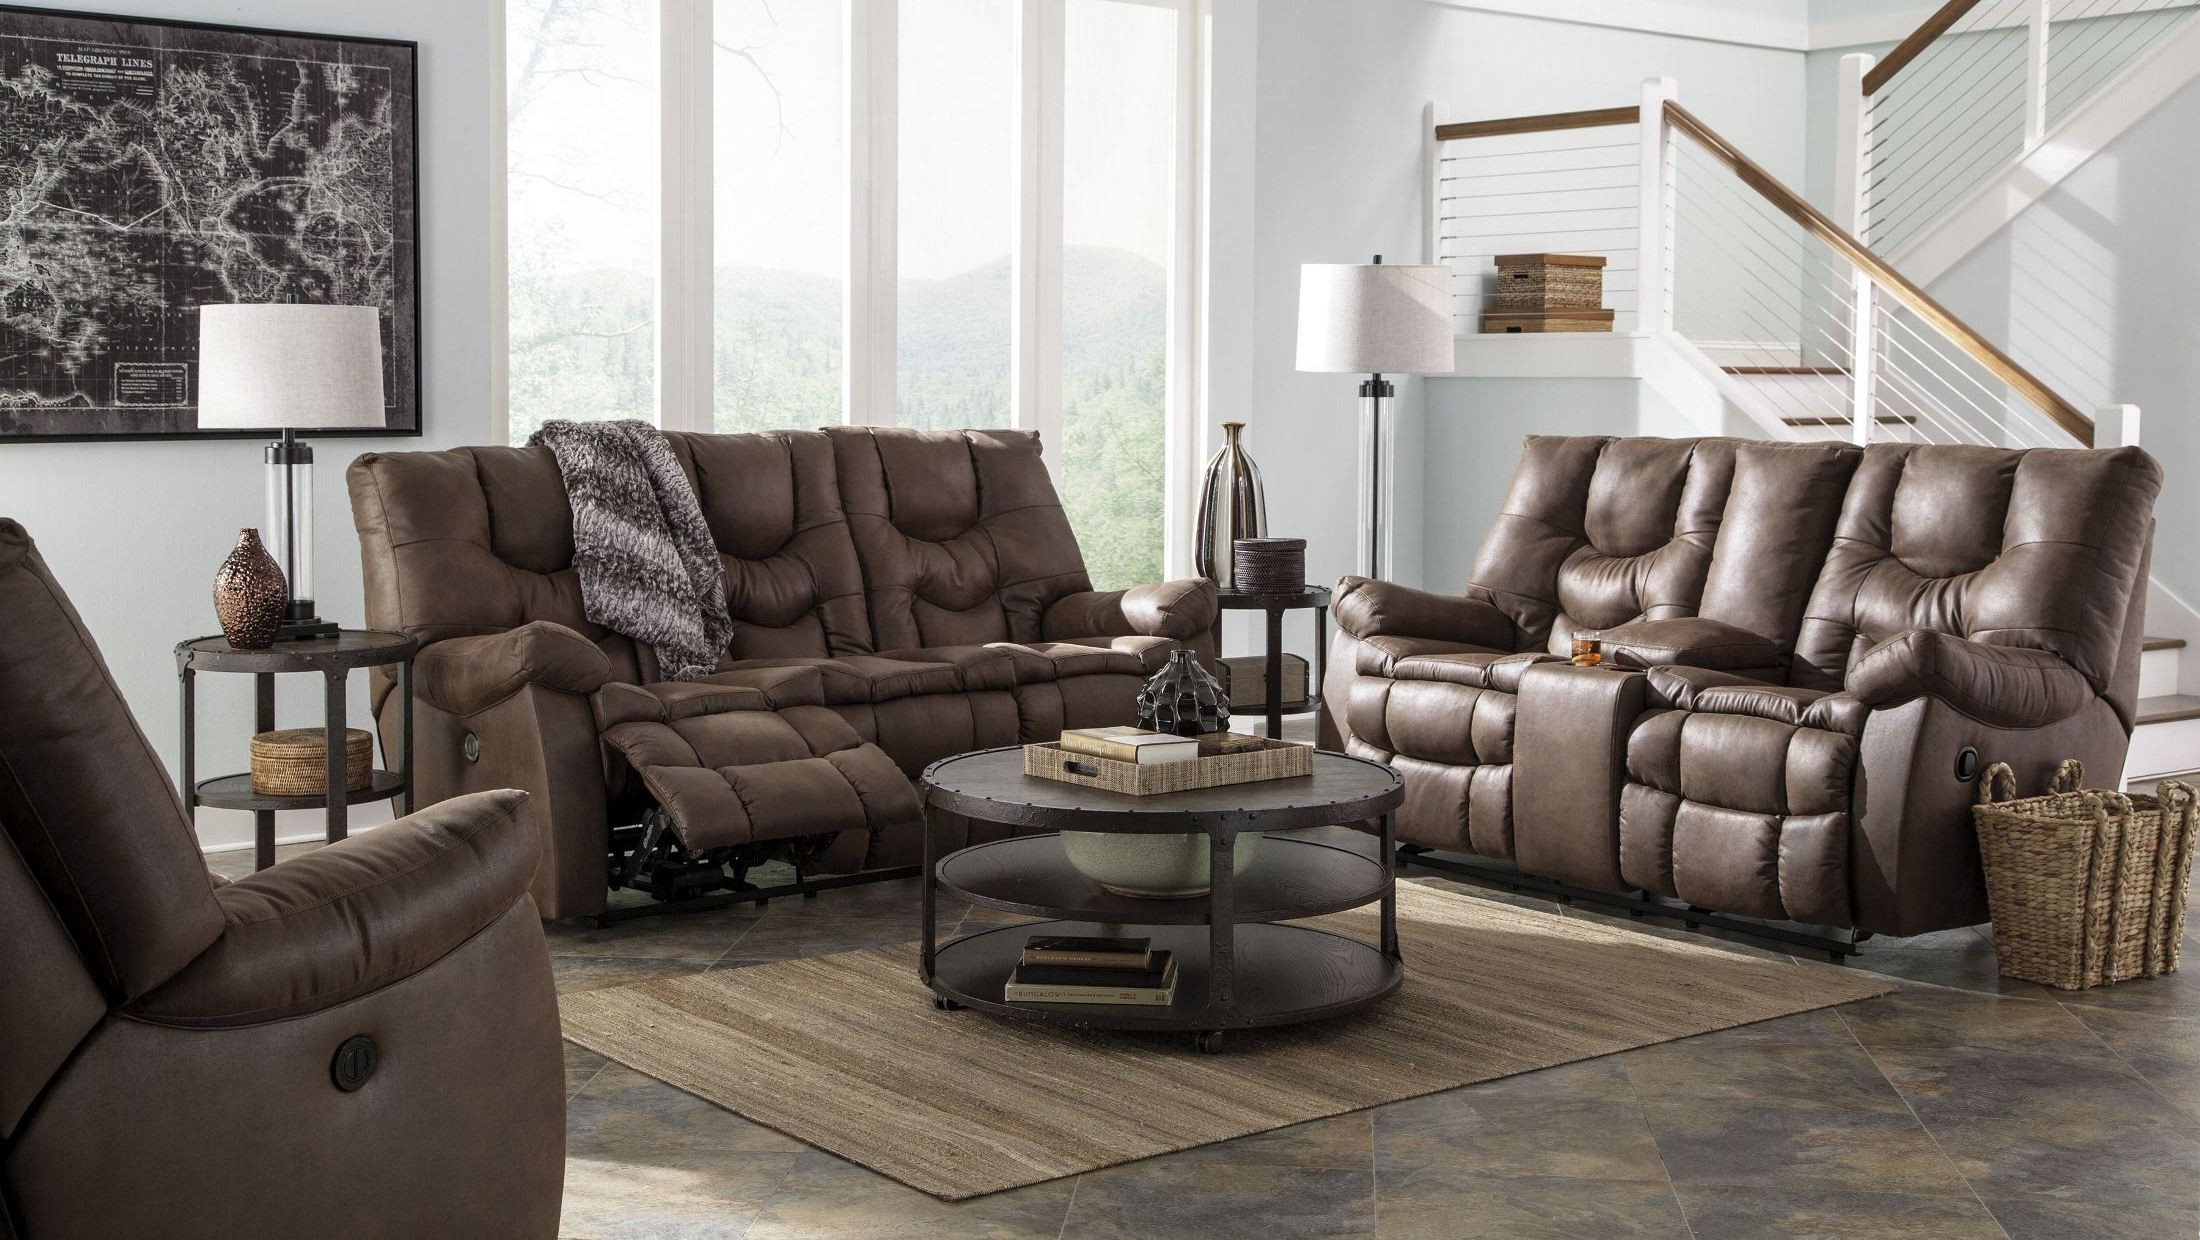 Burgett espresso reclining power reclining living room set for Front room furniture sets